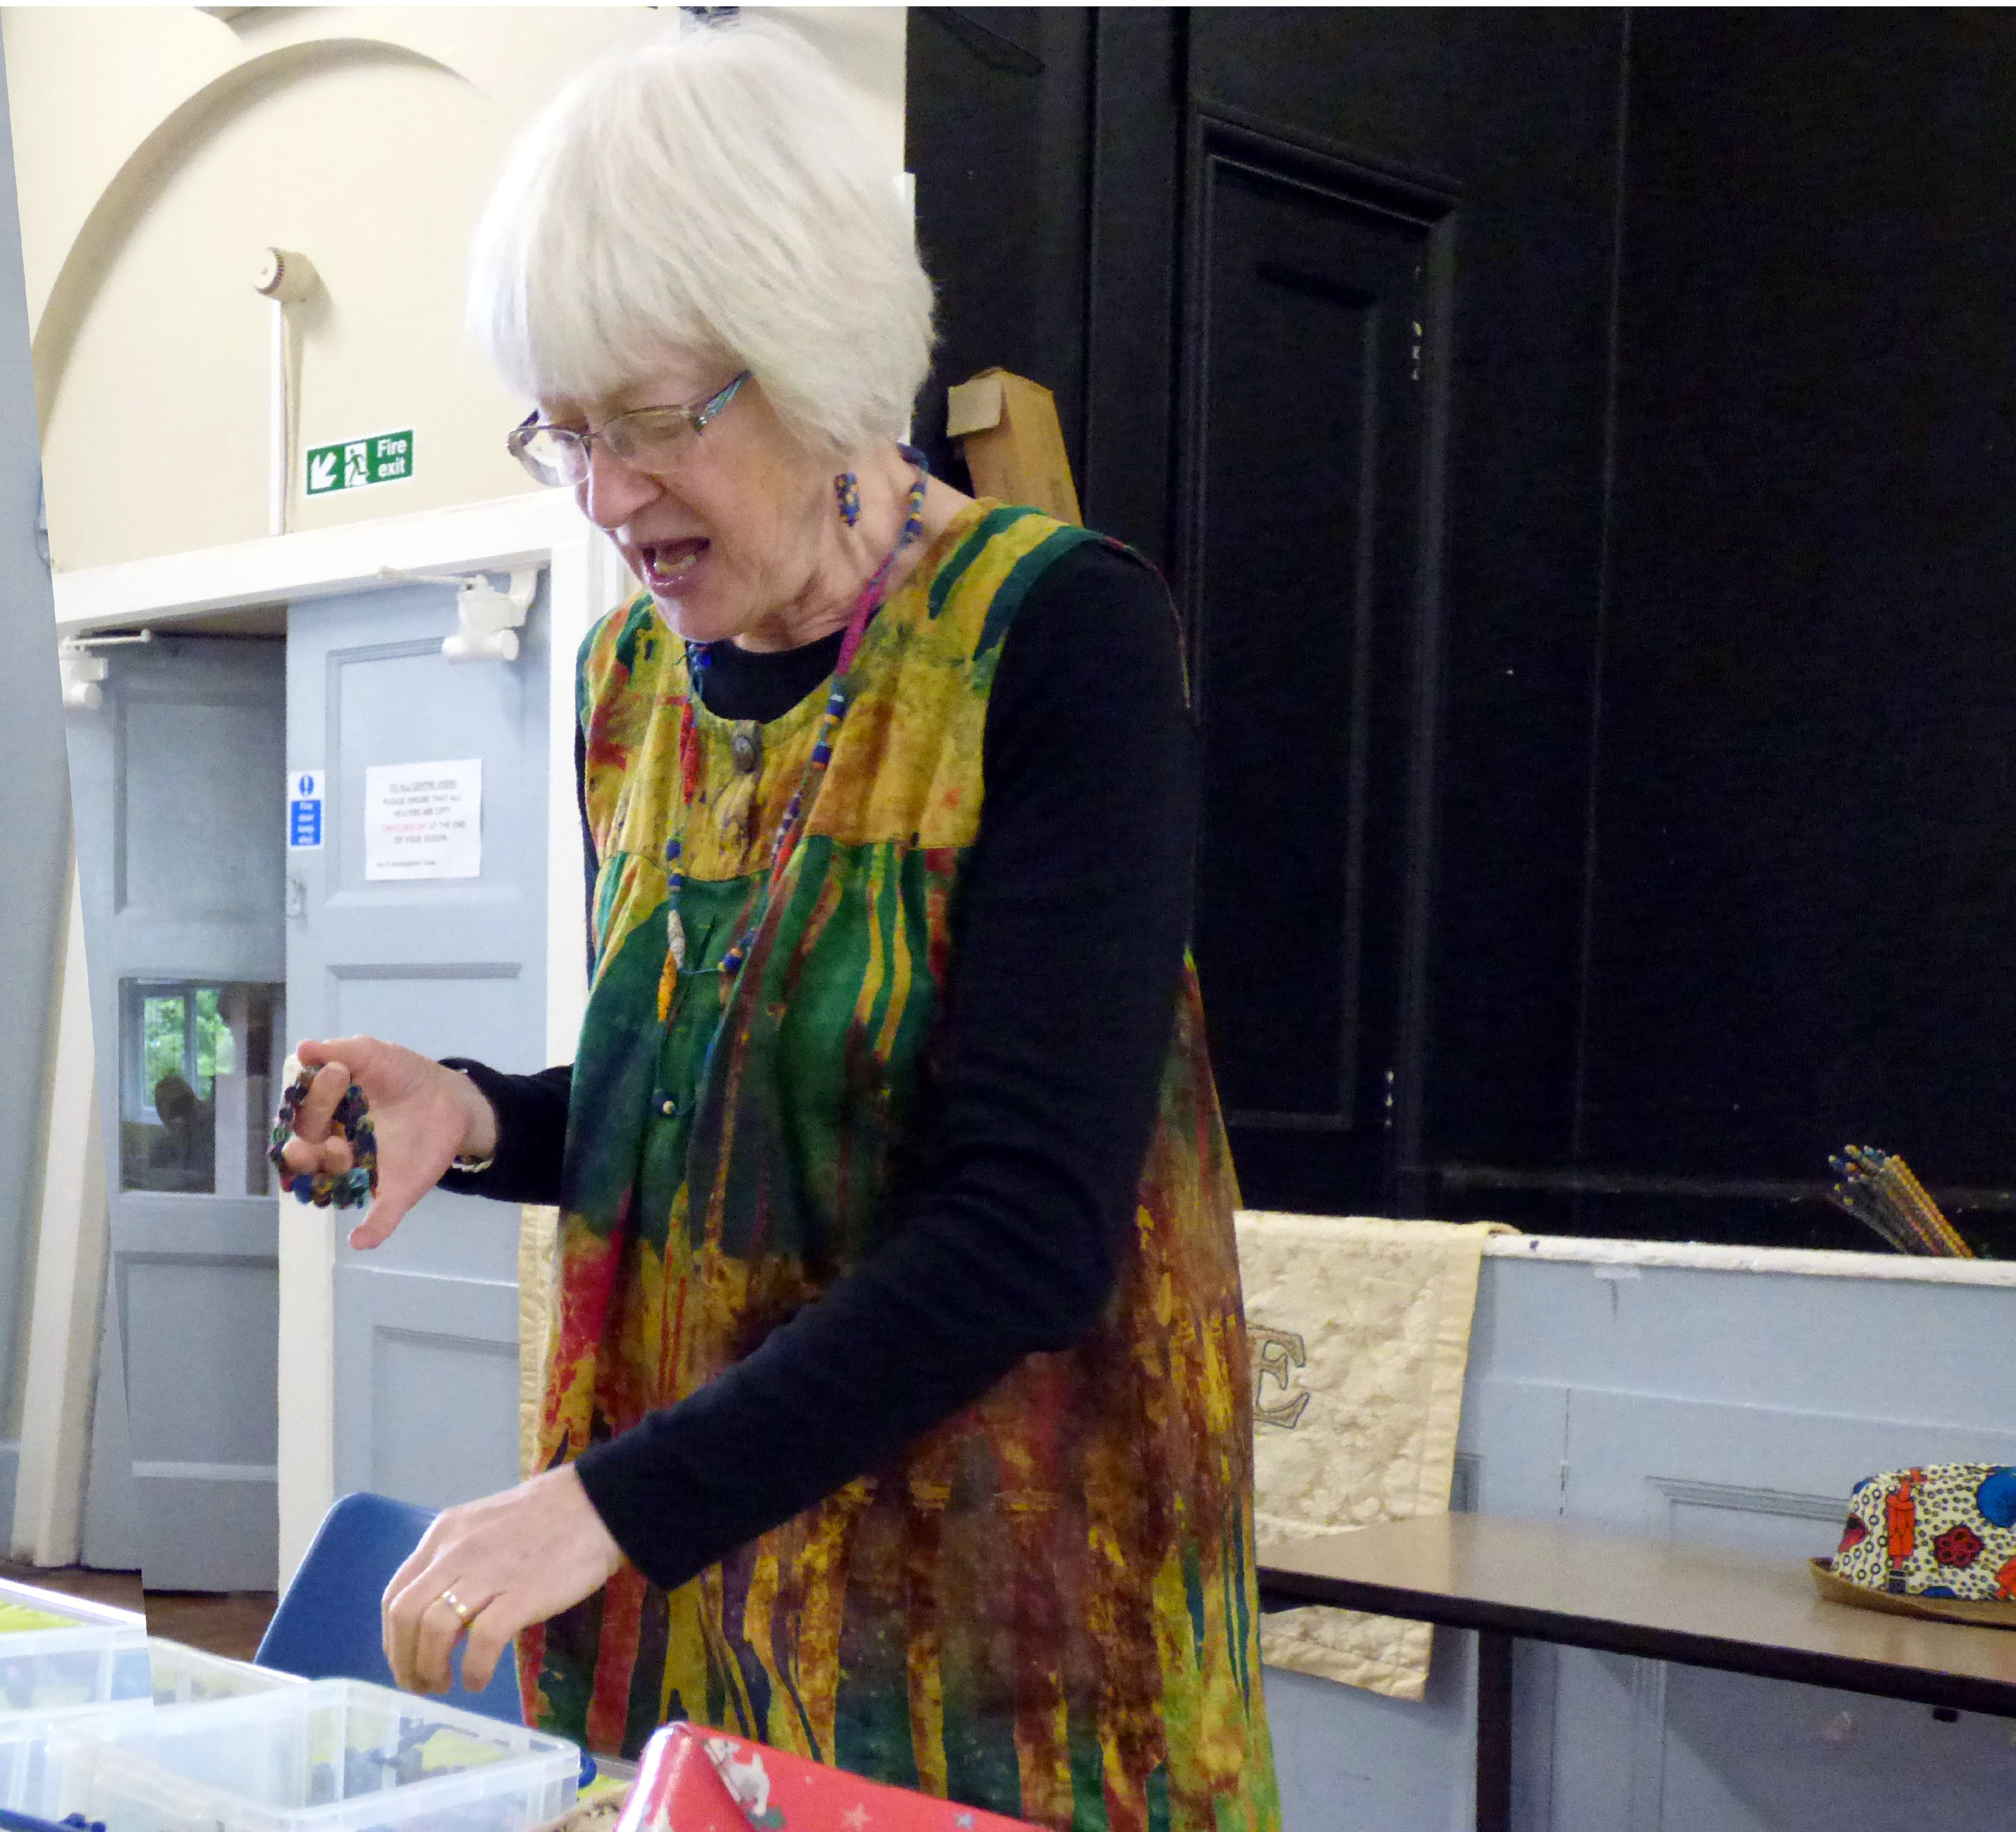 """Magie Relph at MEG with """"Fabric Beadmaking Workshop 2019"""